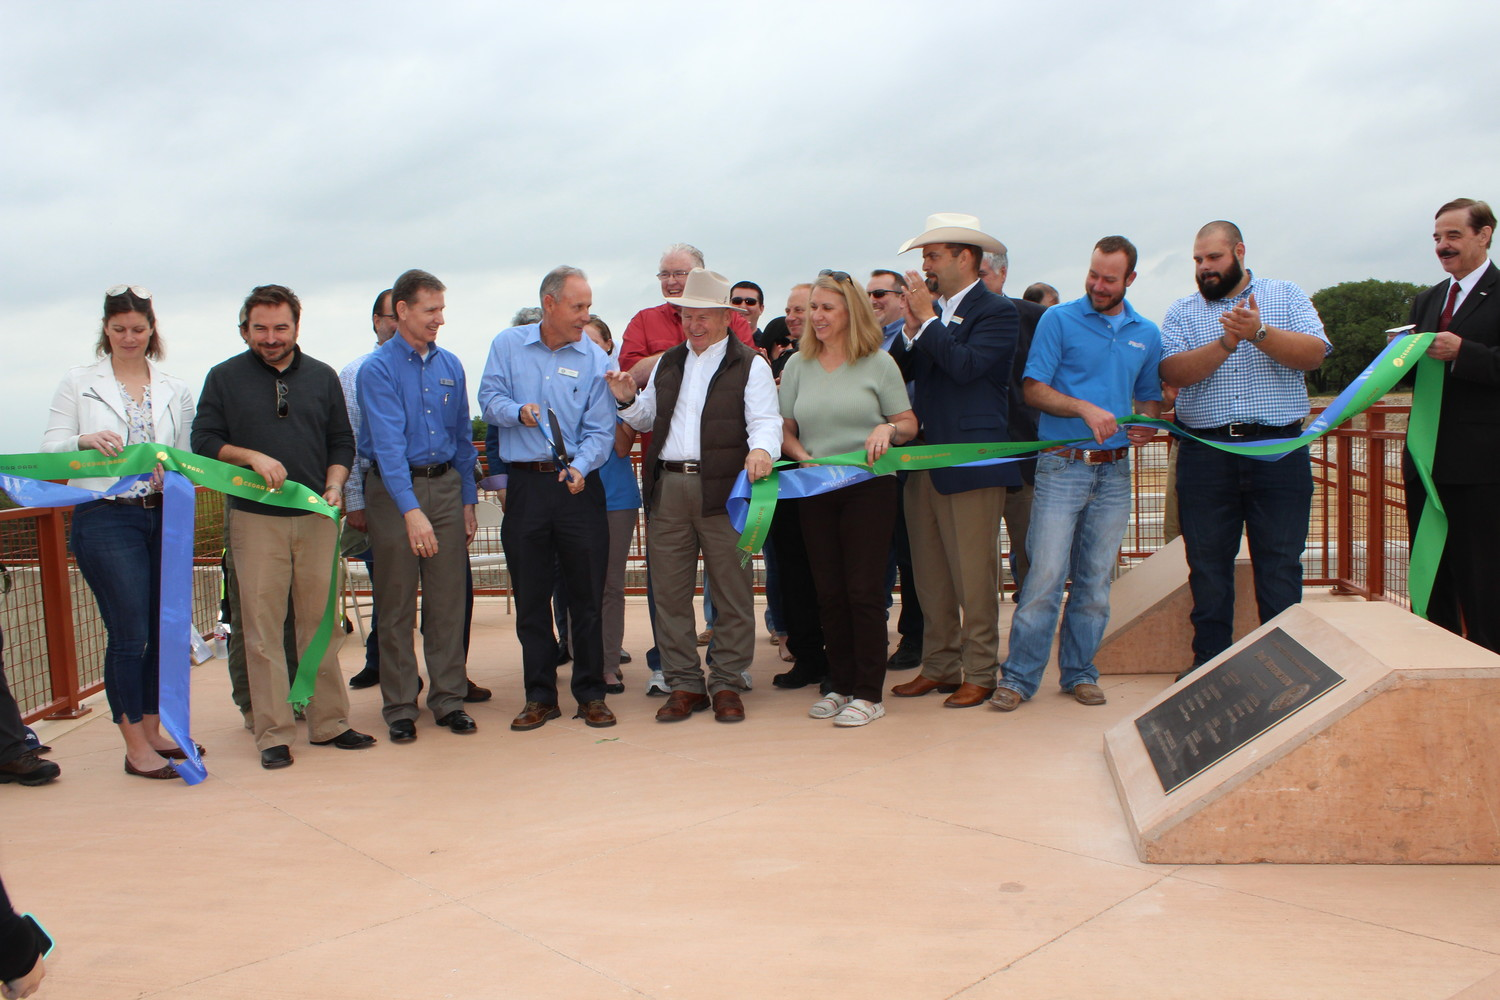 The ribbon cutting for the opening of the newly renovated dam and trails in Brushy Creek Park.